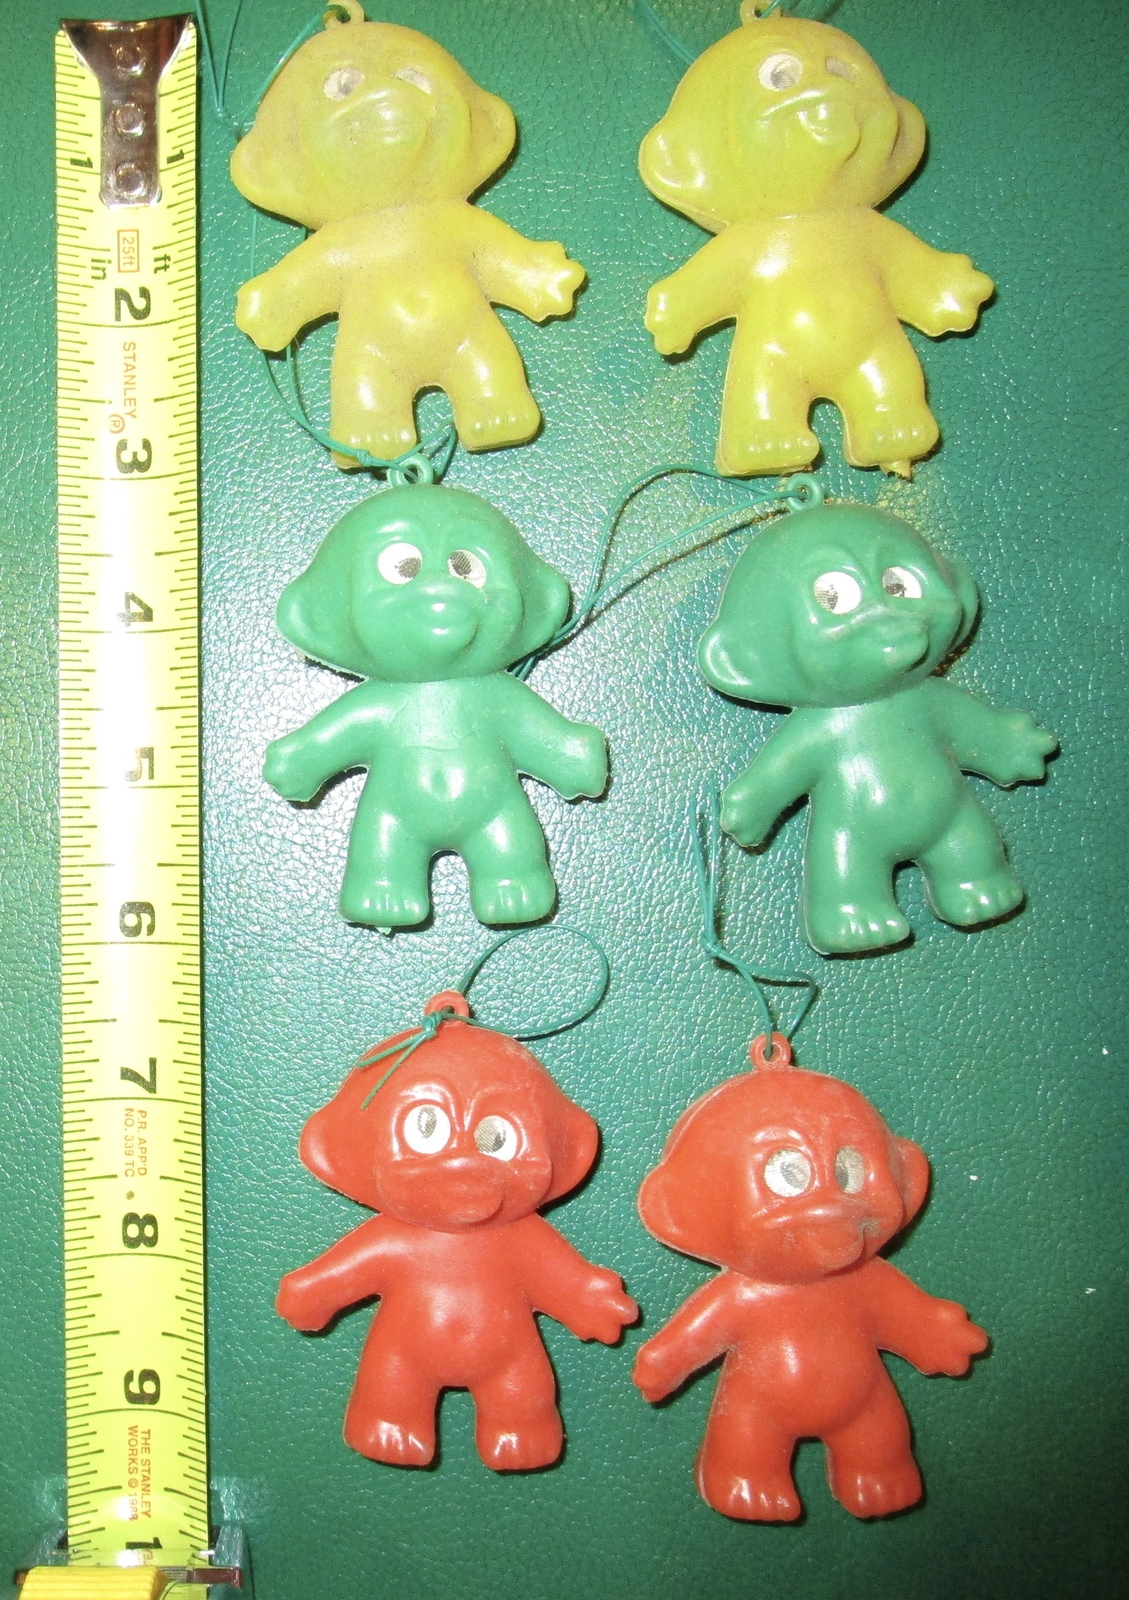 "6 VTG PLASTIC 3"" TROLL DOLLS HONG KONG VENDING MACHINE TOY ORNAMENT FLICKER EYES"